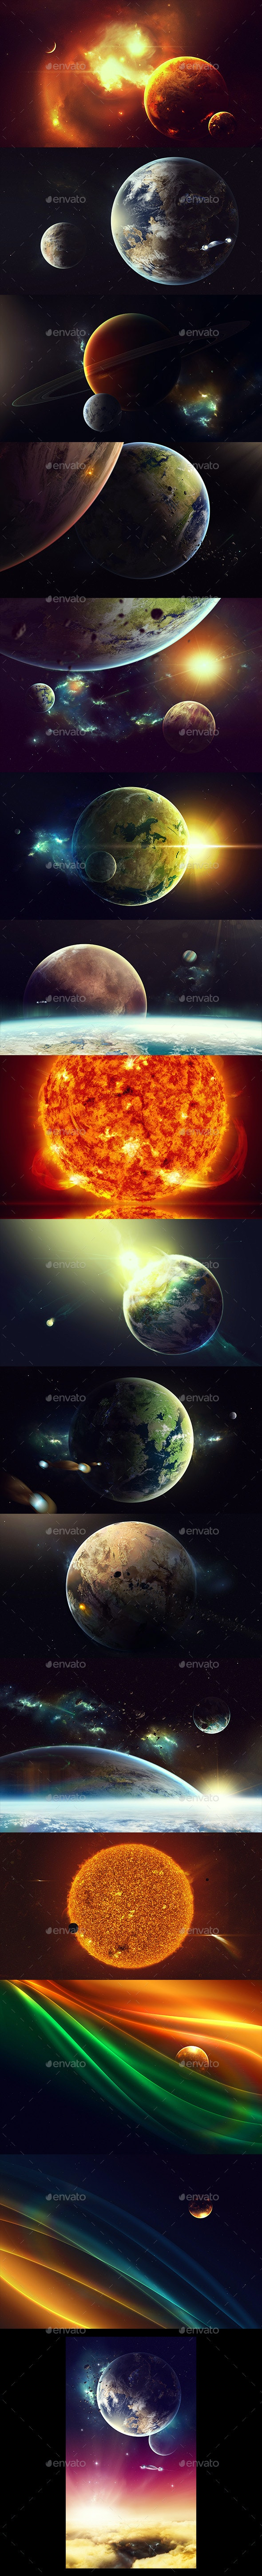 Space Art Backgrounds - Miscellaneous Backgrounds